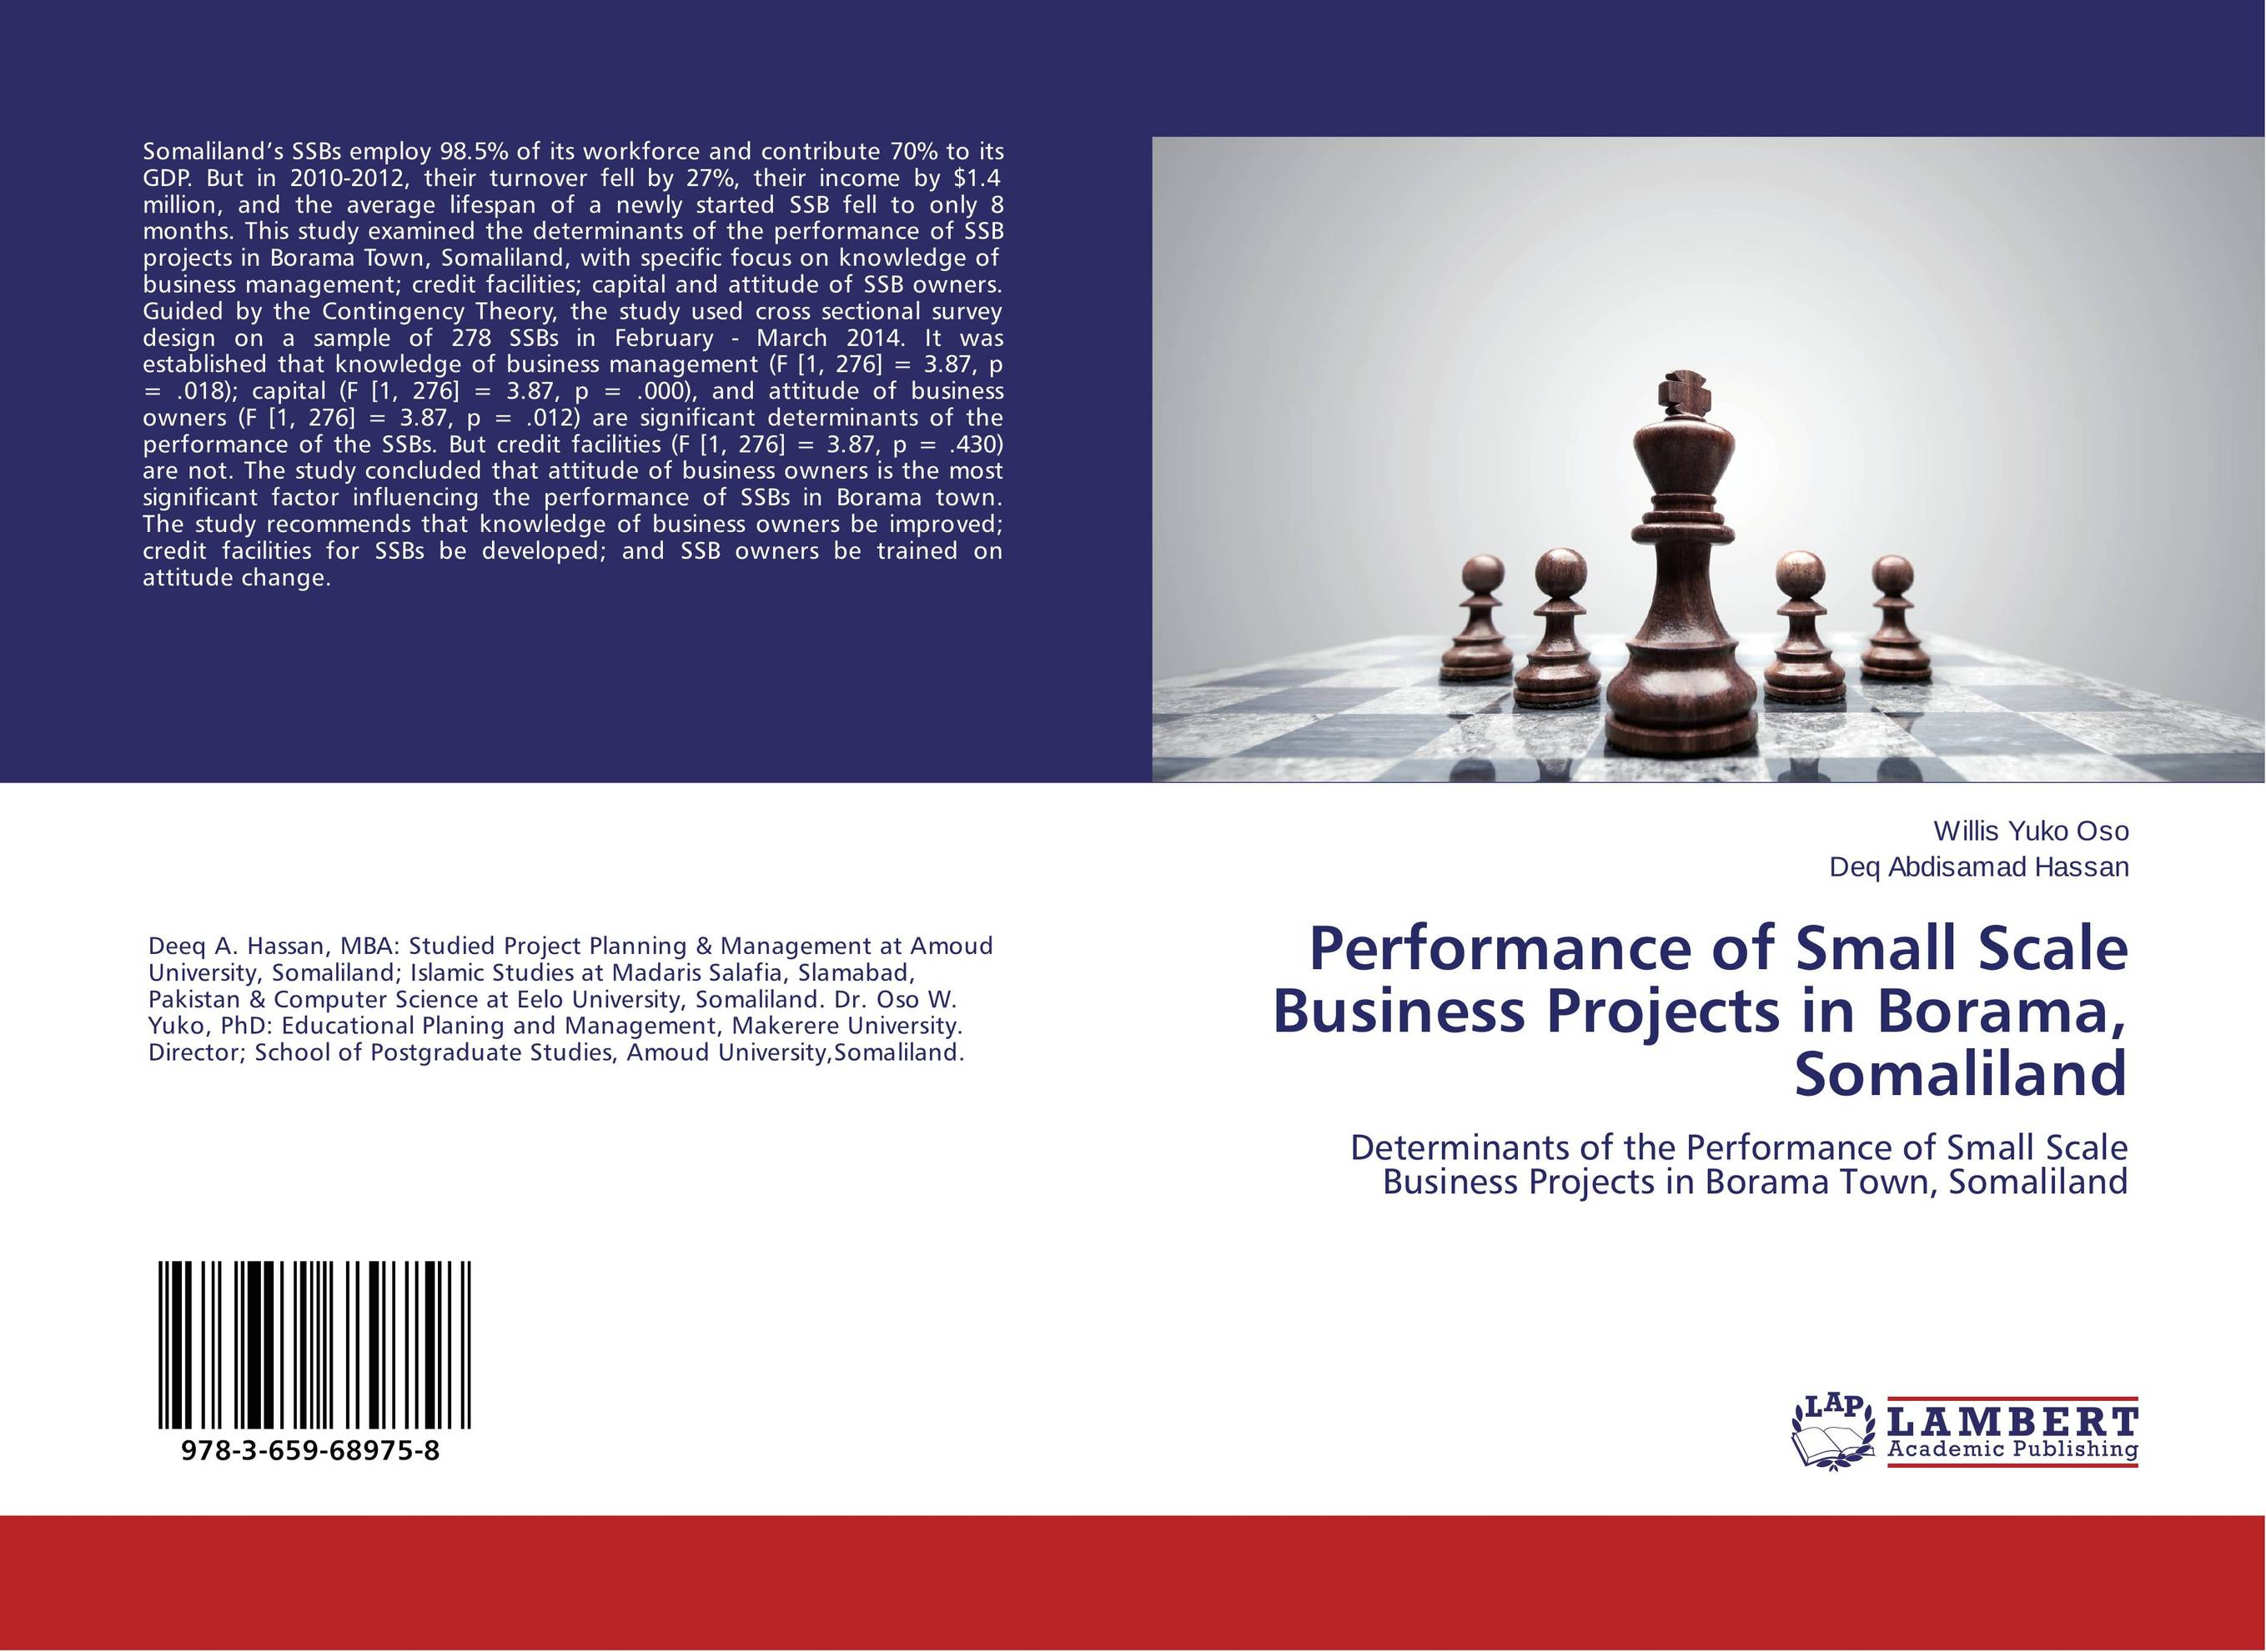 Performance of Small Scale Business Projects in Borama, Somaliland determinants of yield performance in small scale catfish production